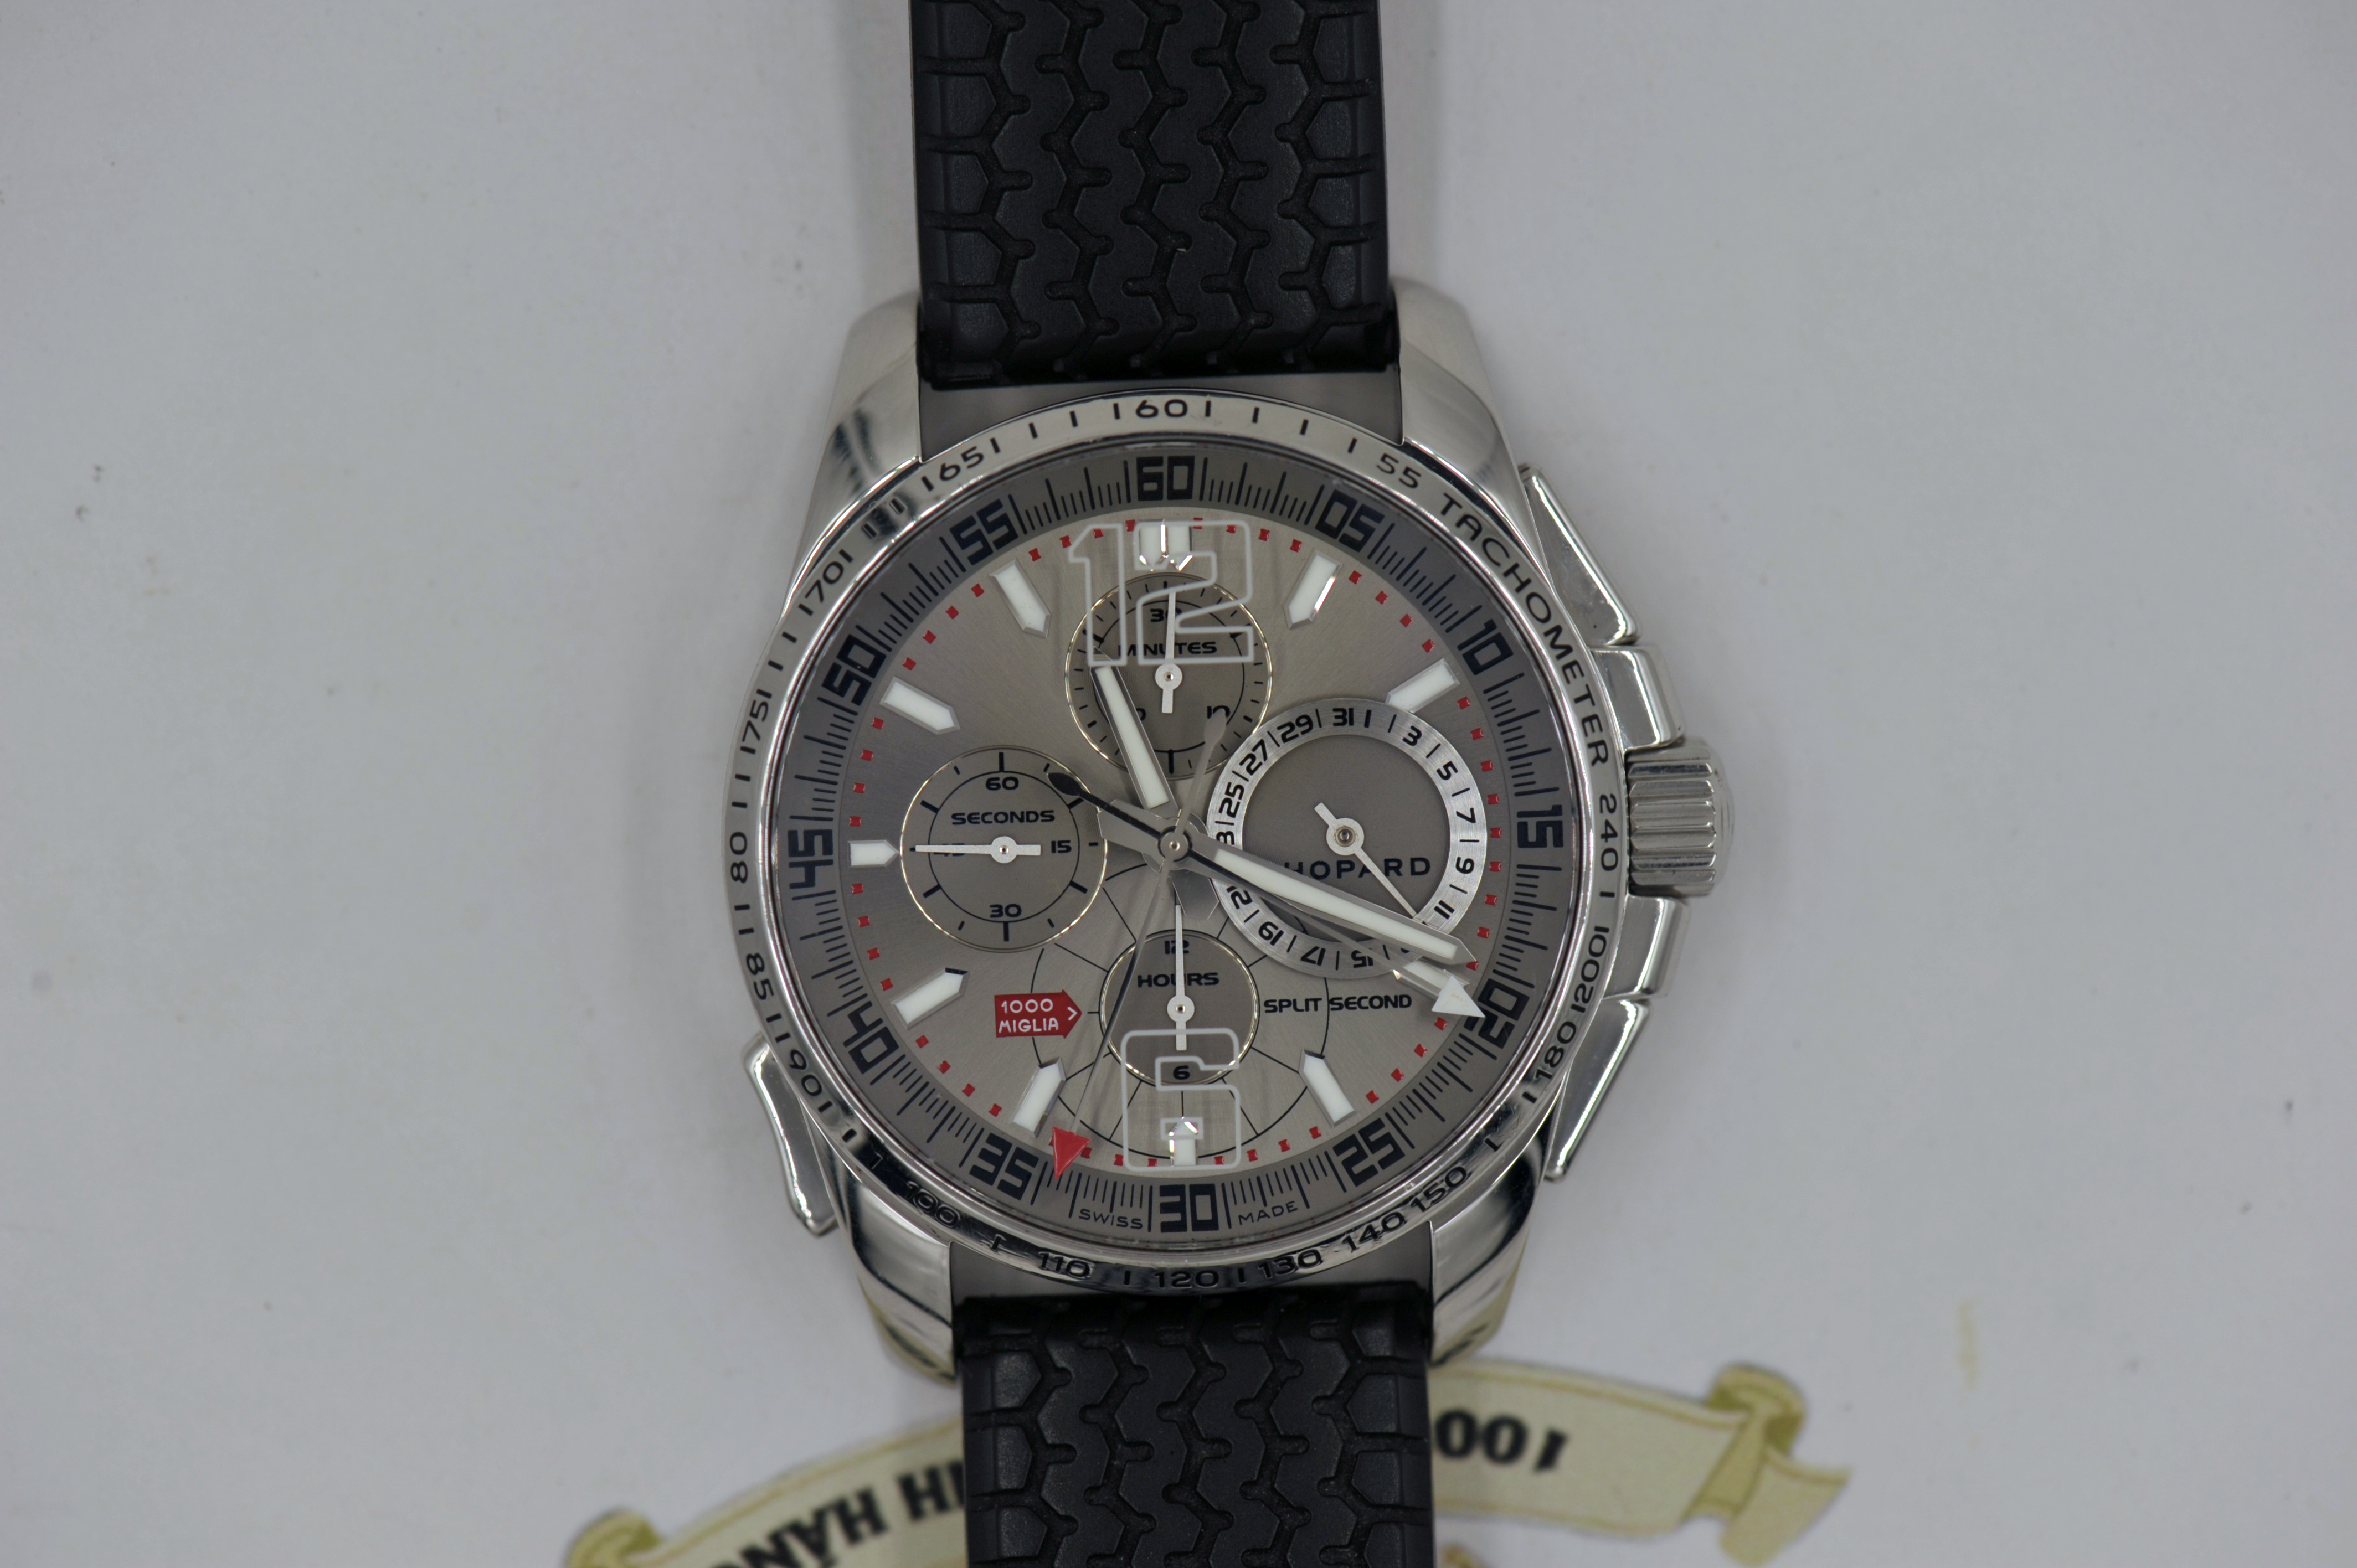 Bán đồng hồ Chopard Chronograph Automatic Split Seconds Limited Edittion.